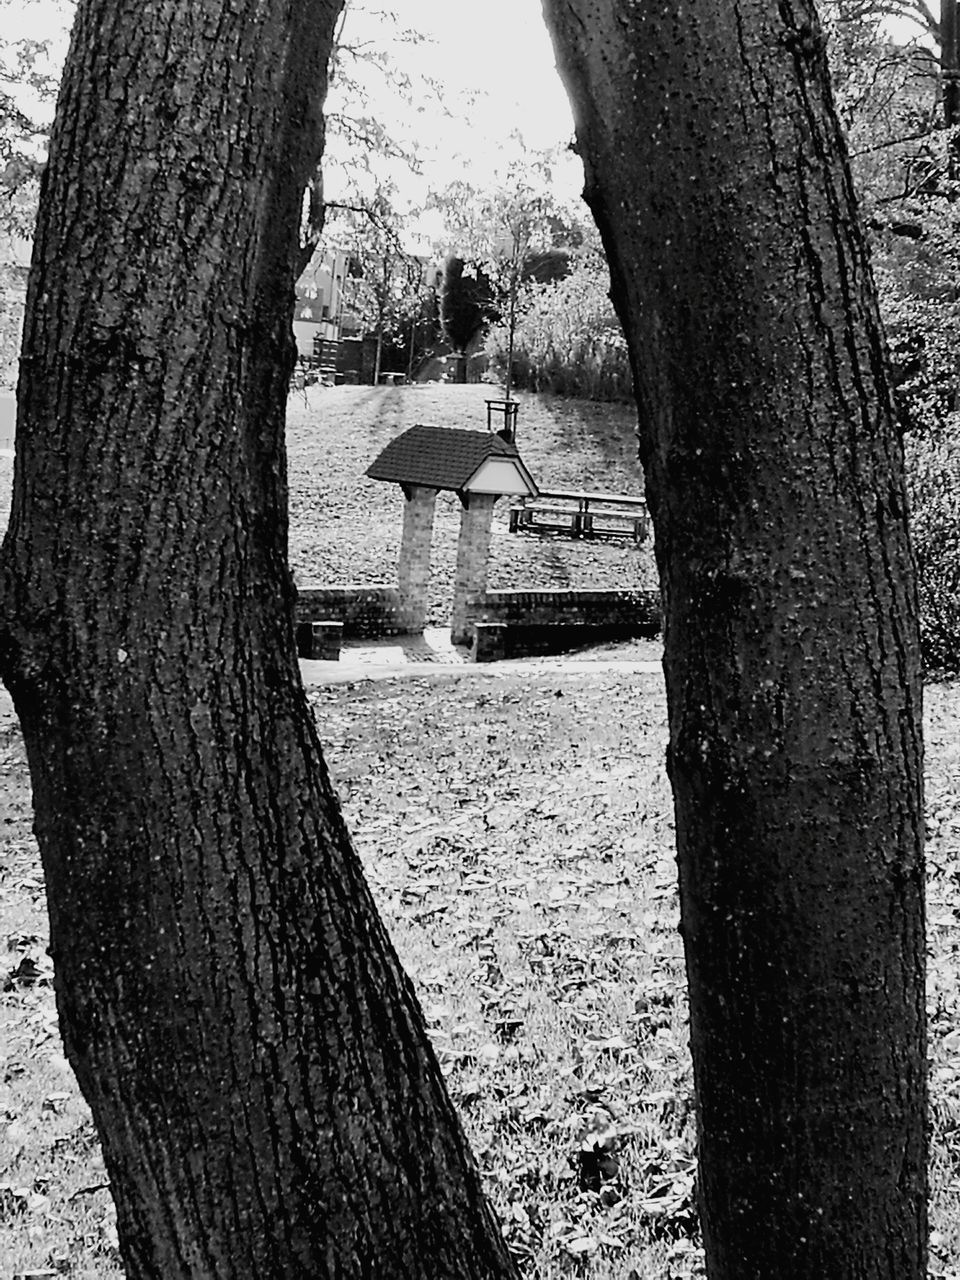 tree trunk, tree, day, built structure, architecture, no people, outdoors, nature, growth, bare tree, building exterior